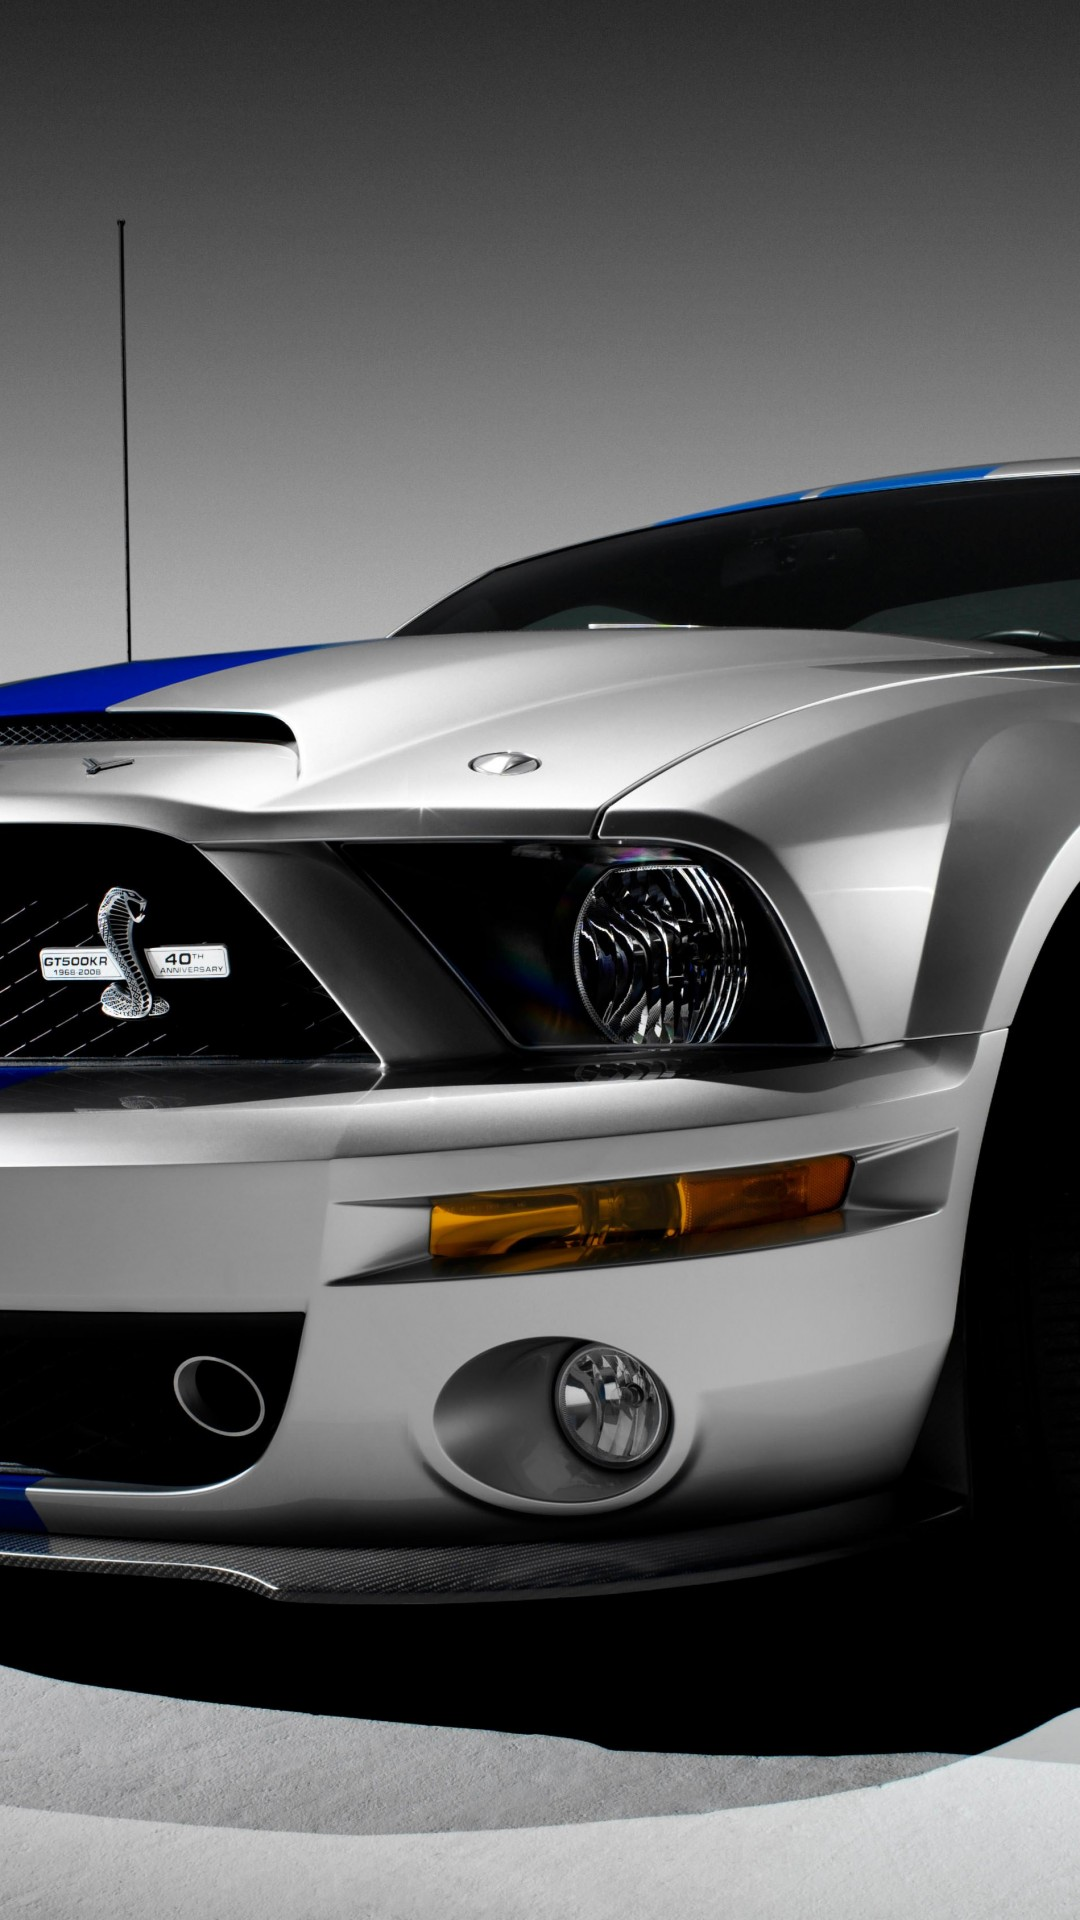 Shelby Mustang GT500KR Wallpaper for LG G2